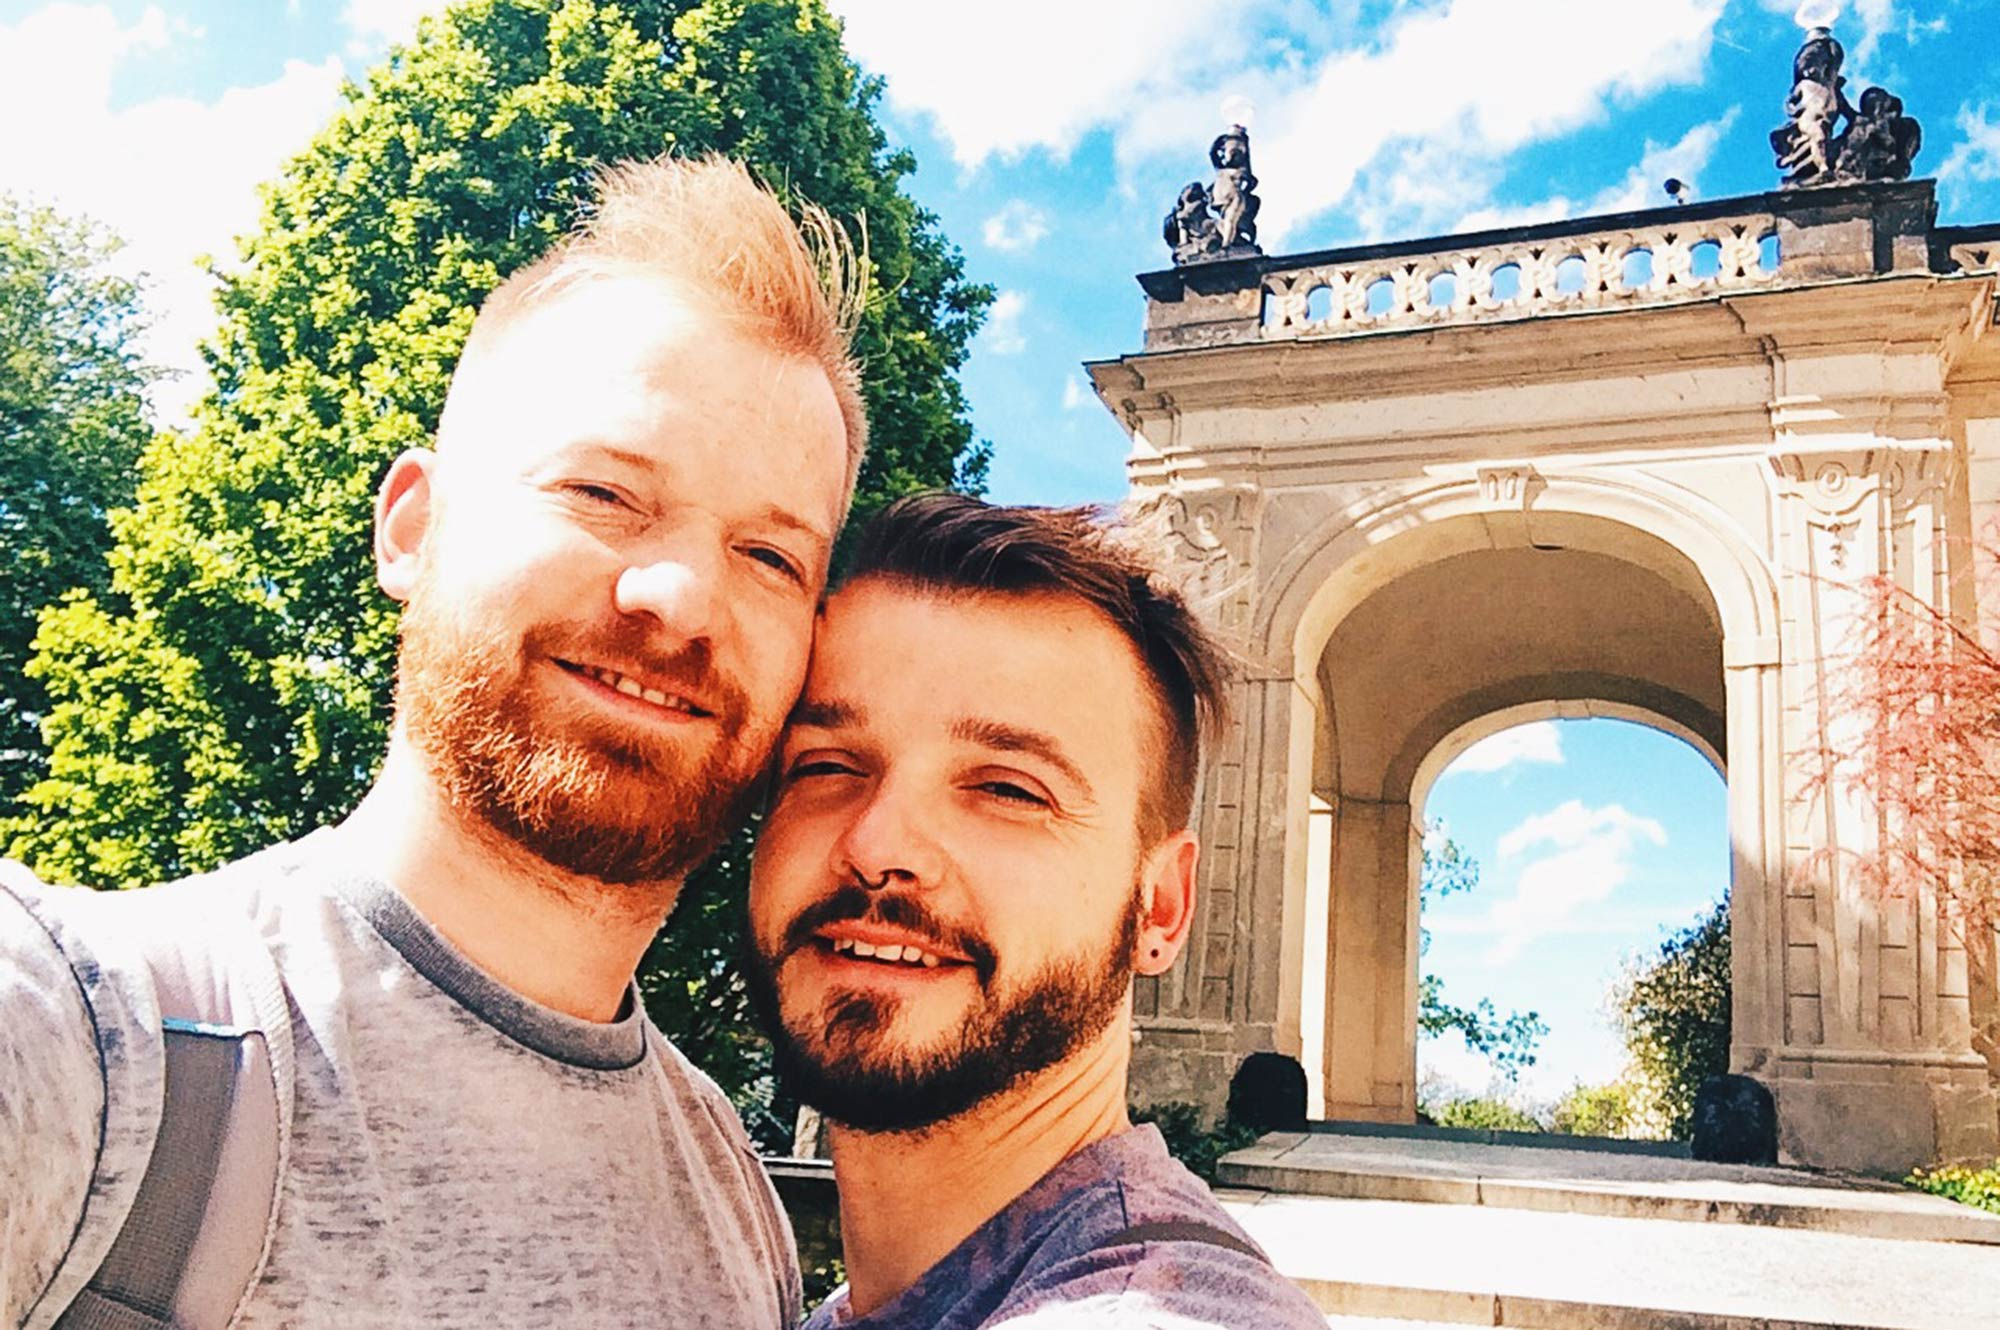 Gay Couple Travel: Our Spring City Weekend Prague | Czech Republic